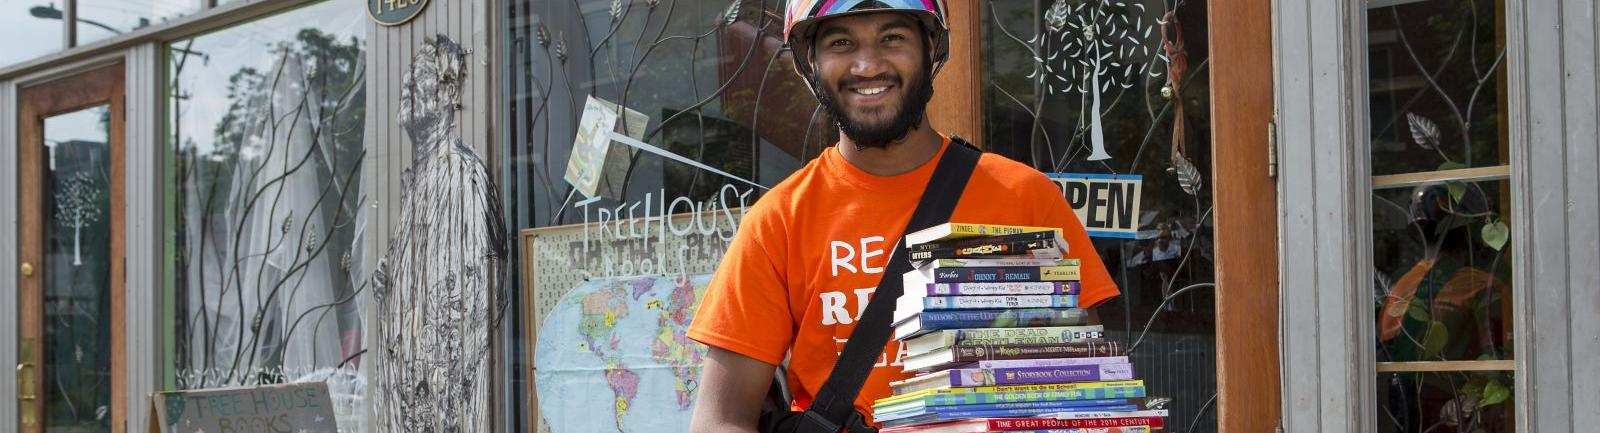 man carrying a tall stack of books on his bike